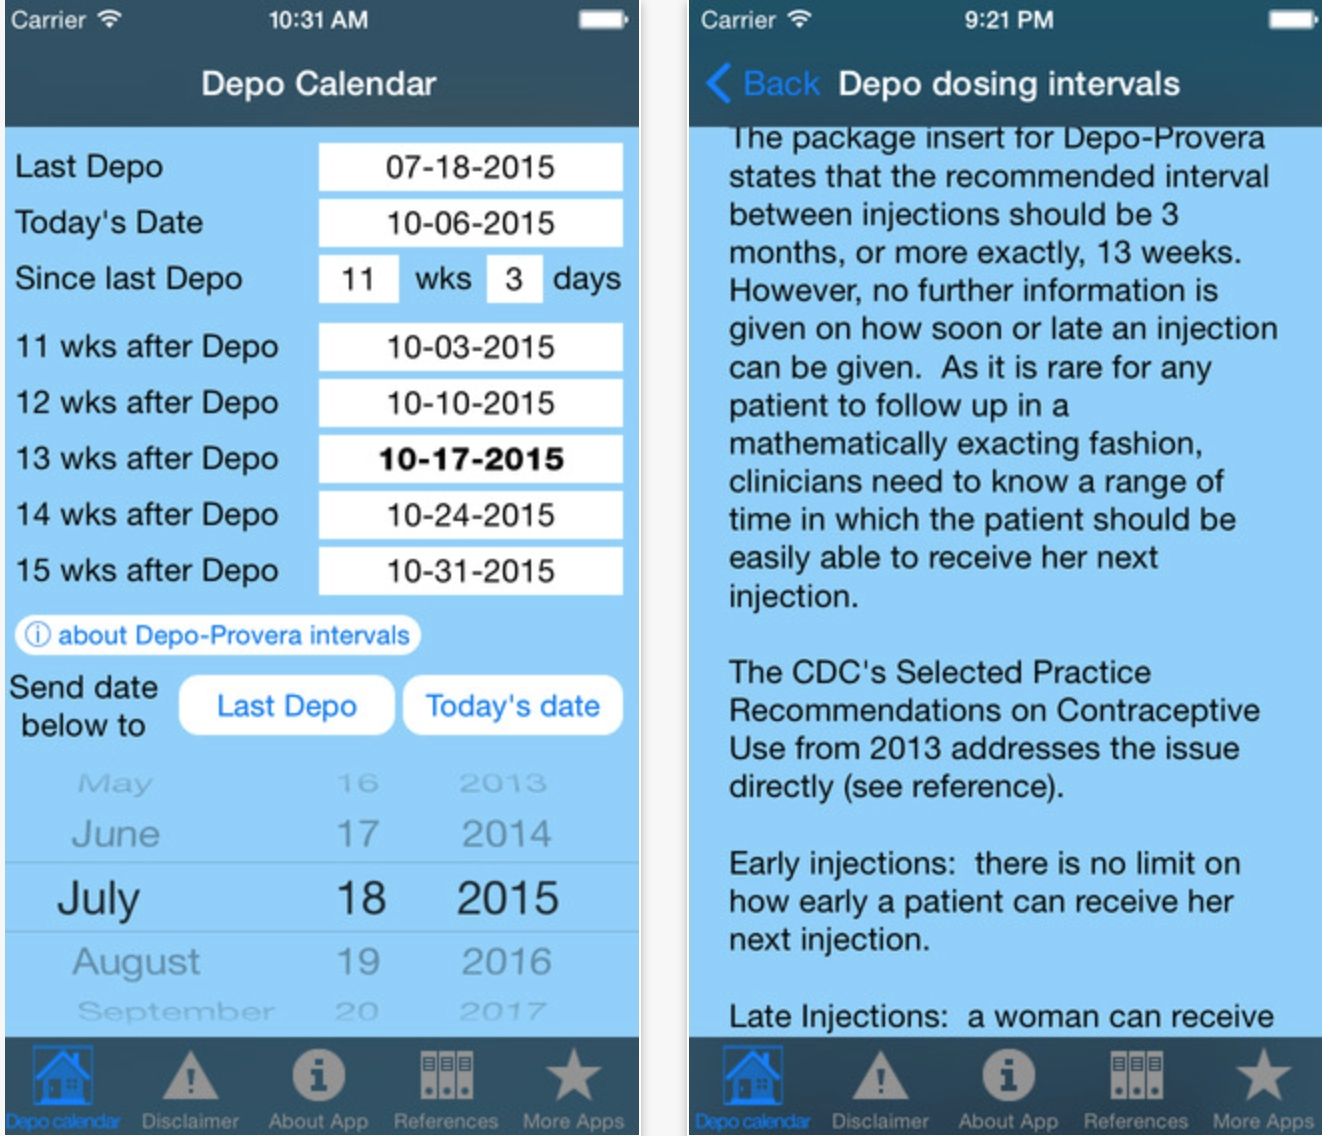 Depo Calendar App Could Significantly Improve Contraception  Depo Schedule Dates